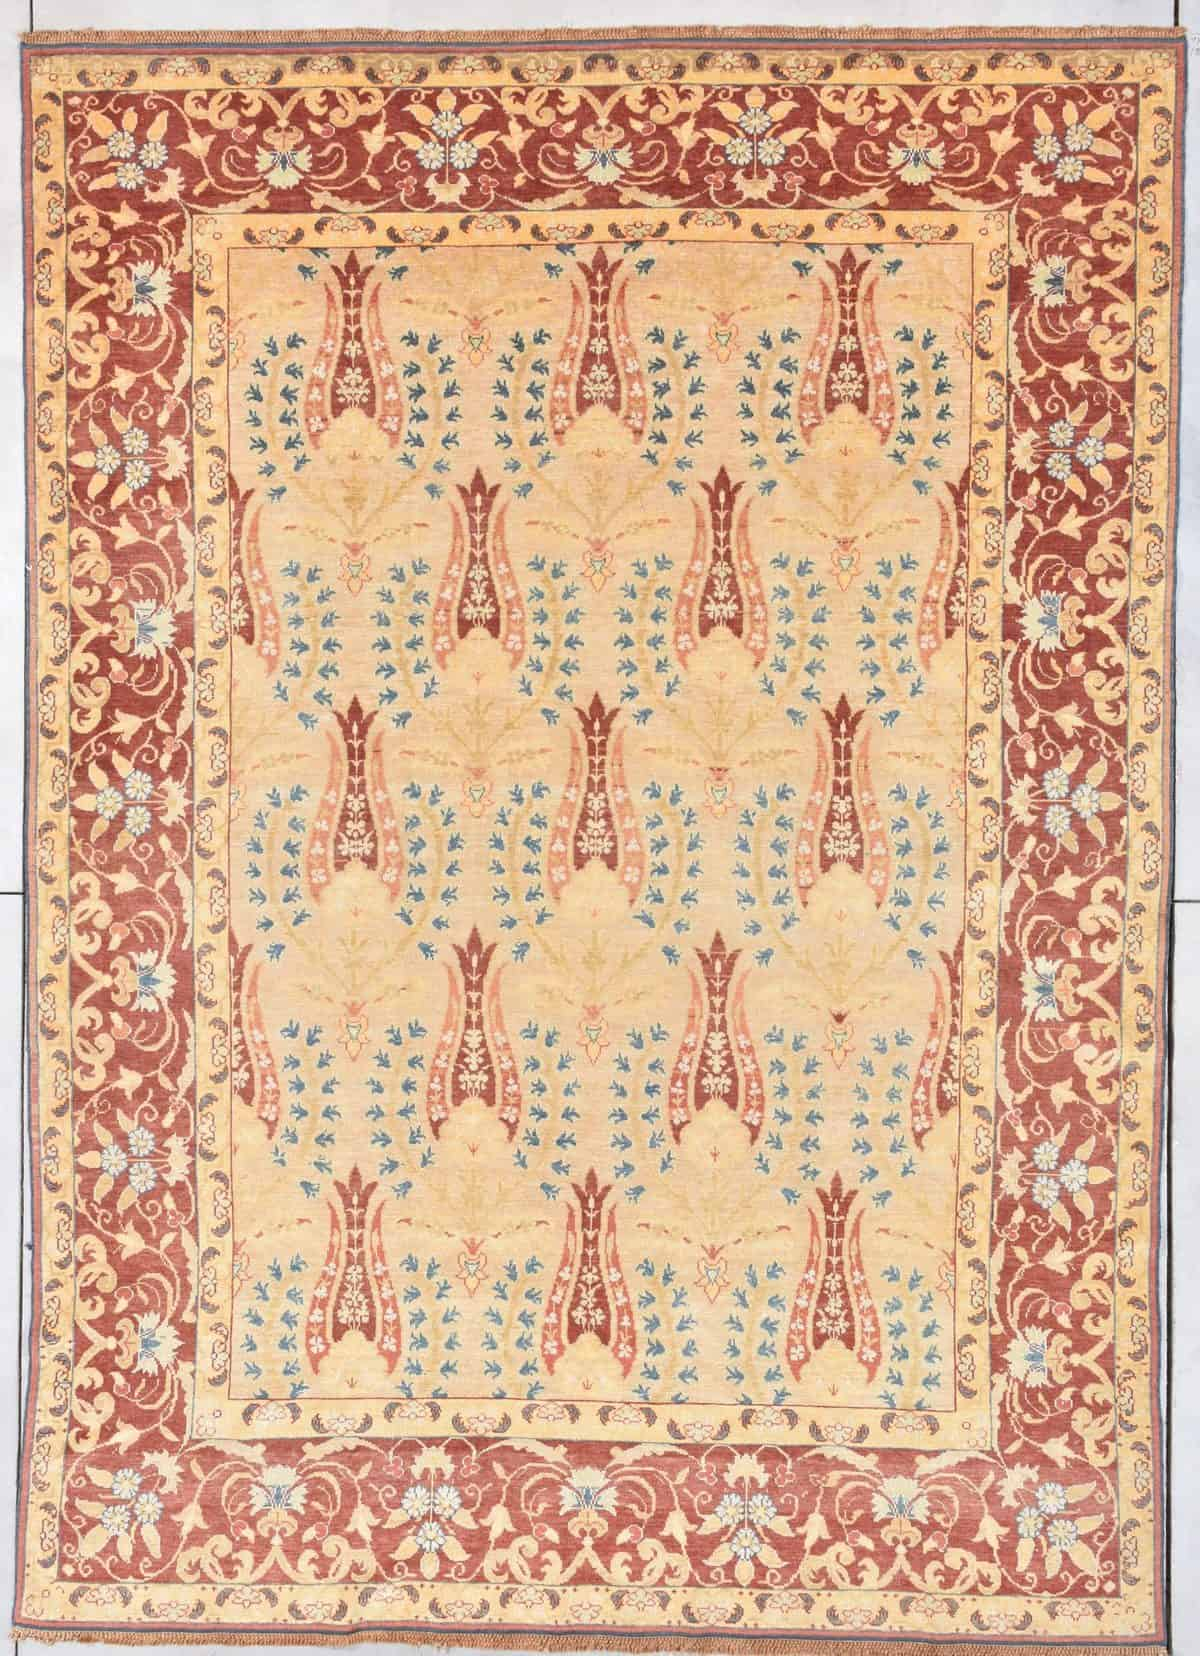 Antique european handmade carpet